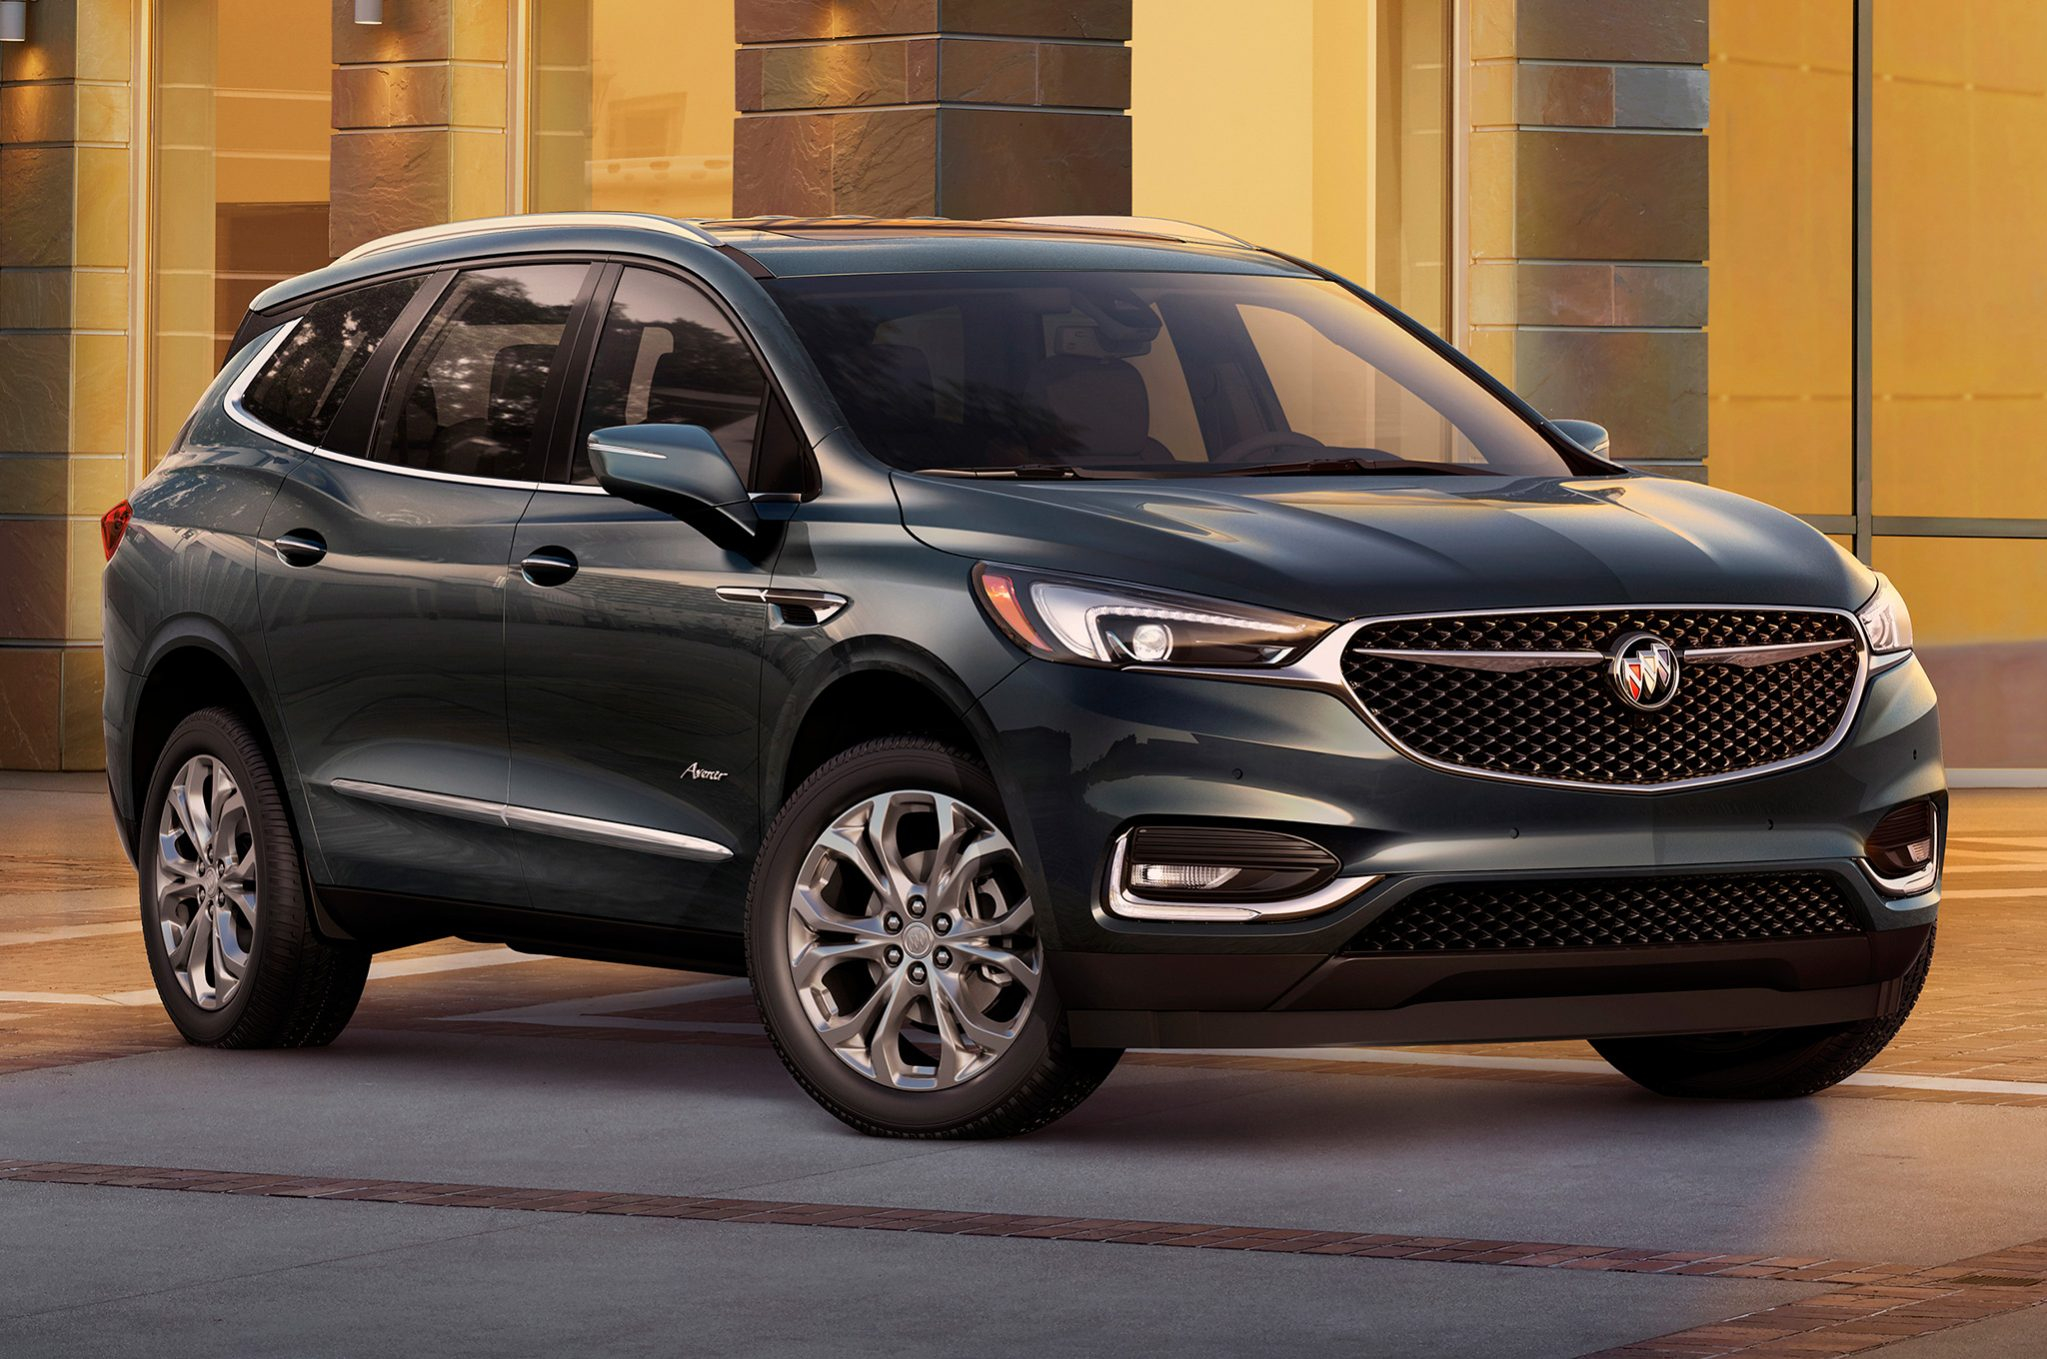 2019 Buick Enclave - Leasetechs Florida Auto Leasing Brokers New 2022 Buick Enclave Interior Colors, Heads Up Display, Incentives